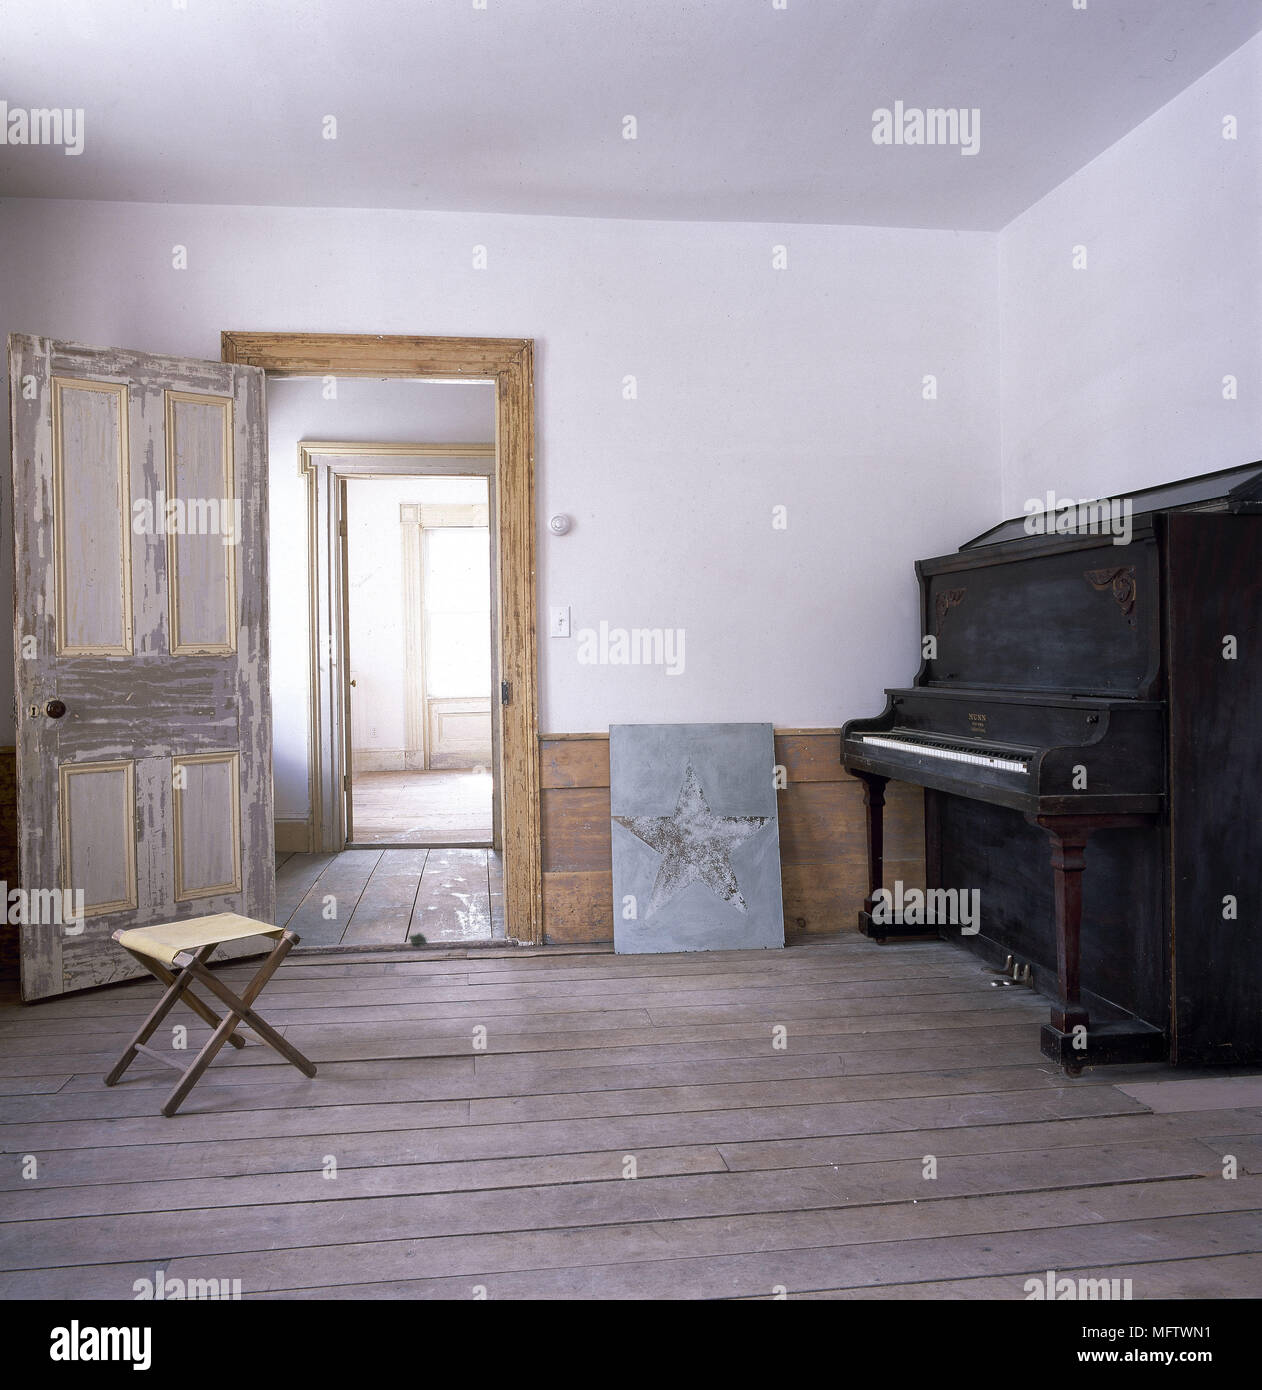 Empty Room: Wooden Floorboards Empty Room Stock Photos & Wooden